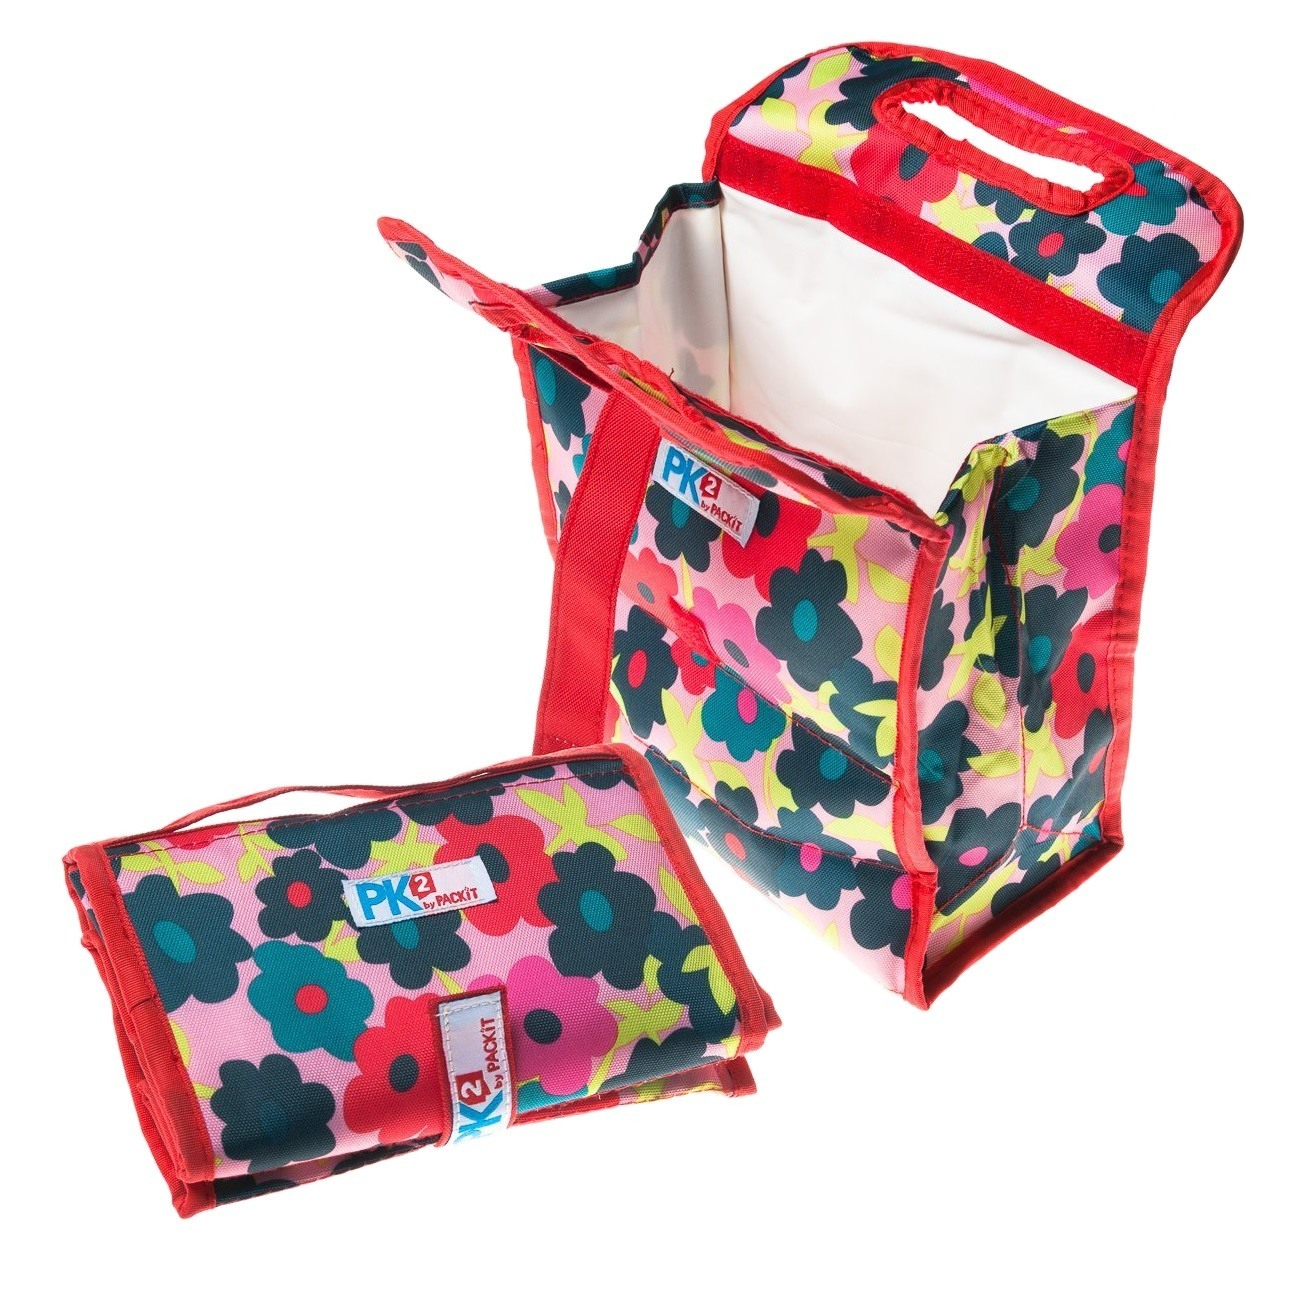 PackIt Freezable Lunch Bag with Velcro Closure